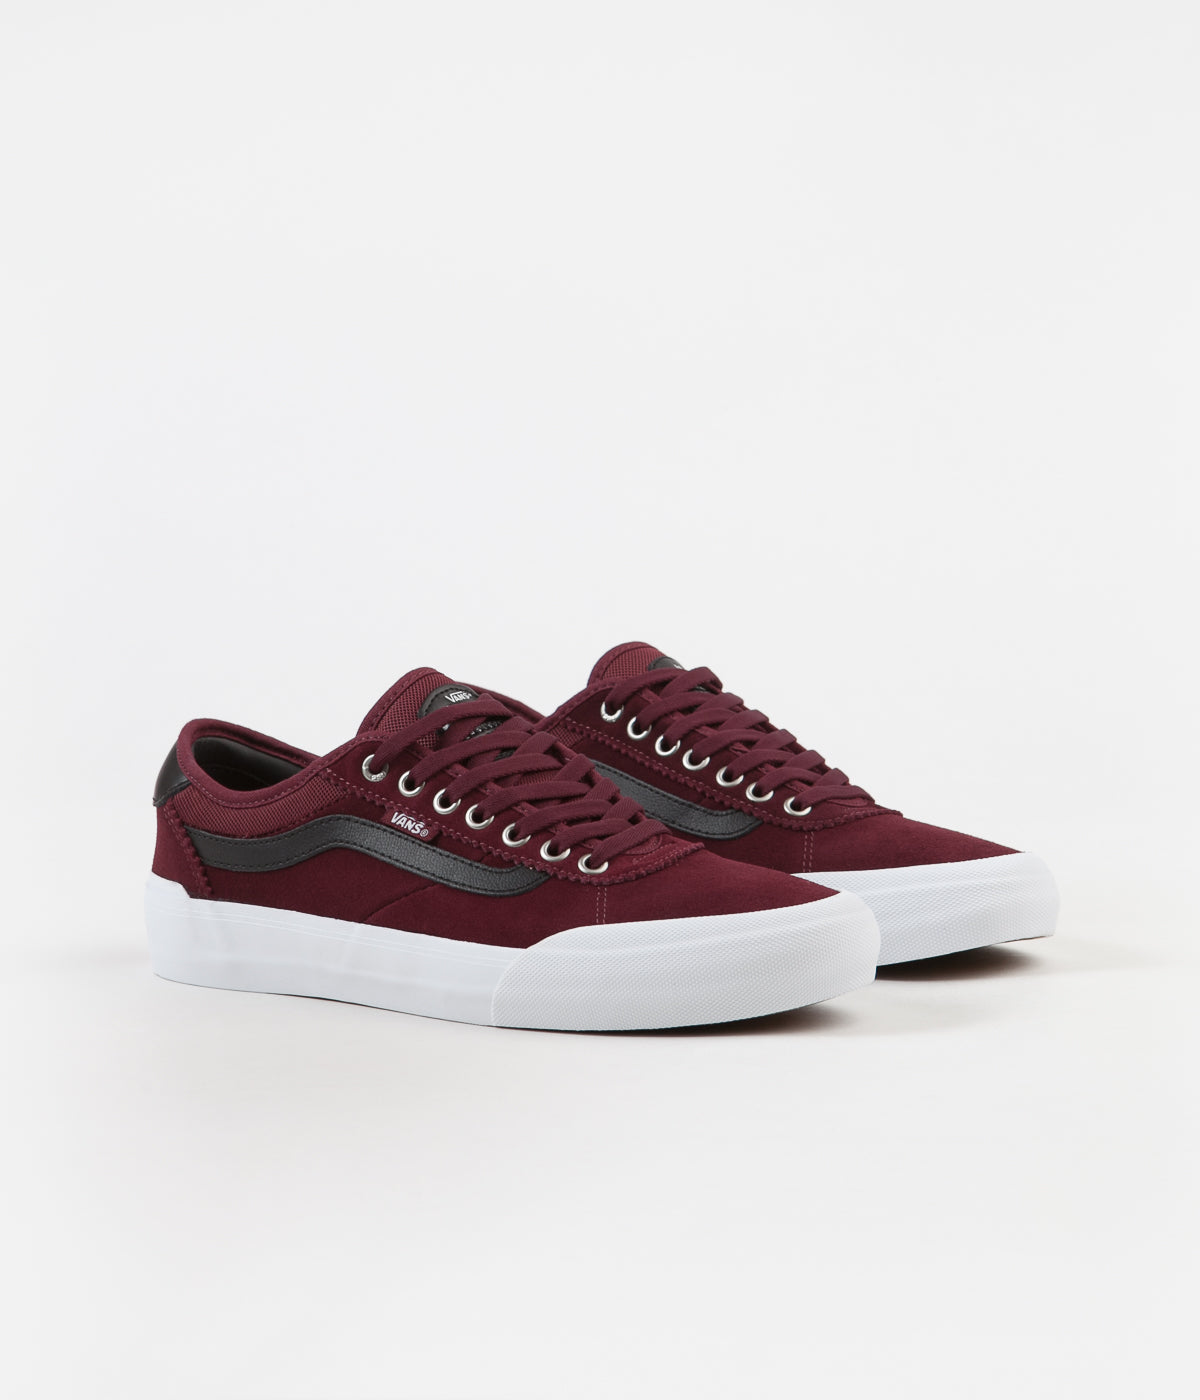 ea812599 Vans Chima Pro 2 Shoes - (Mesh) Port Royale / Black | Flatspot